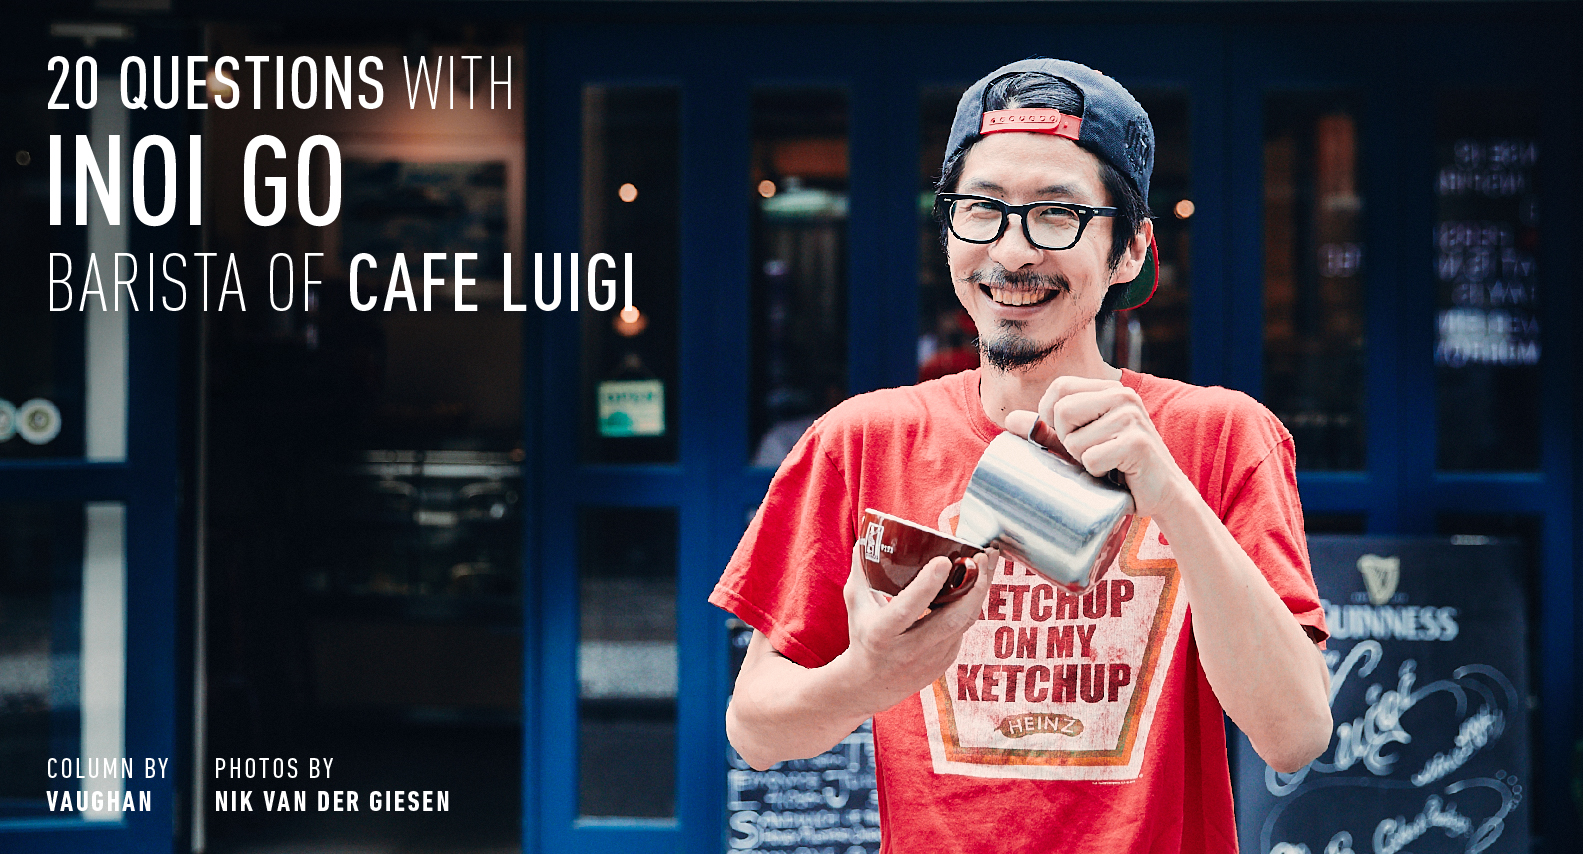 20 QUESTIONS WITH INOI GO BARISTA OF CAFE LUIGI